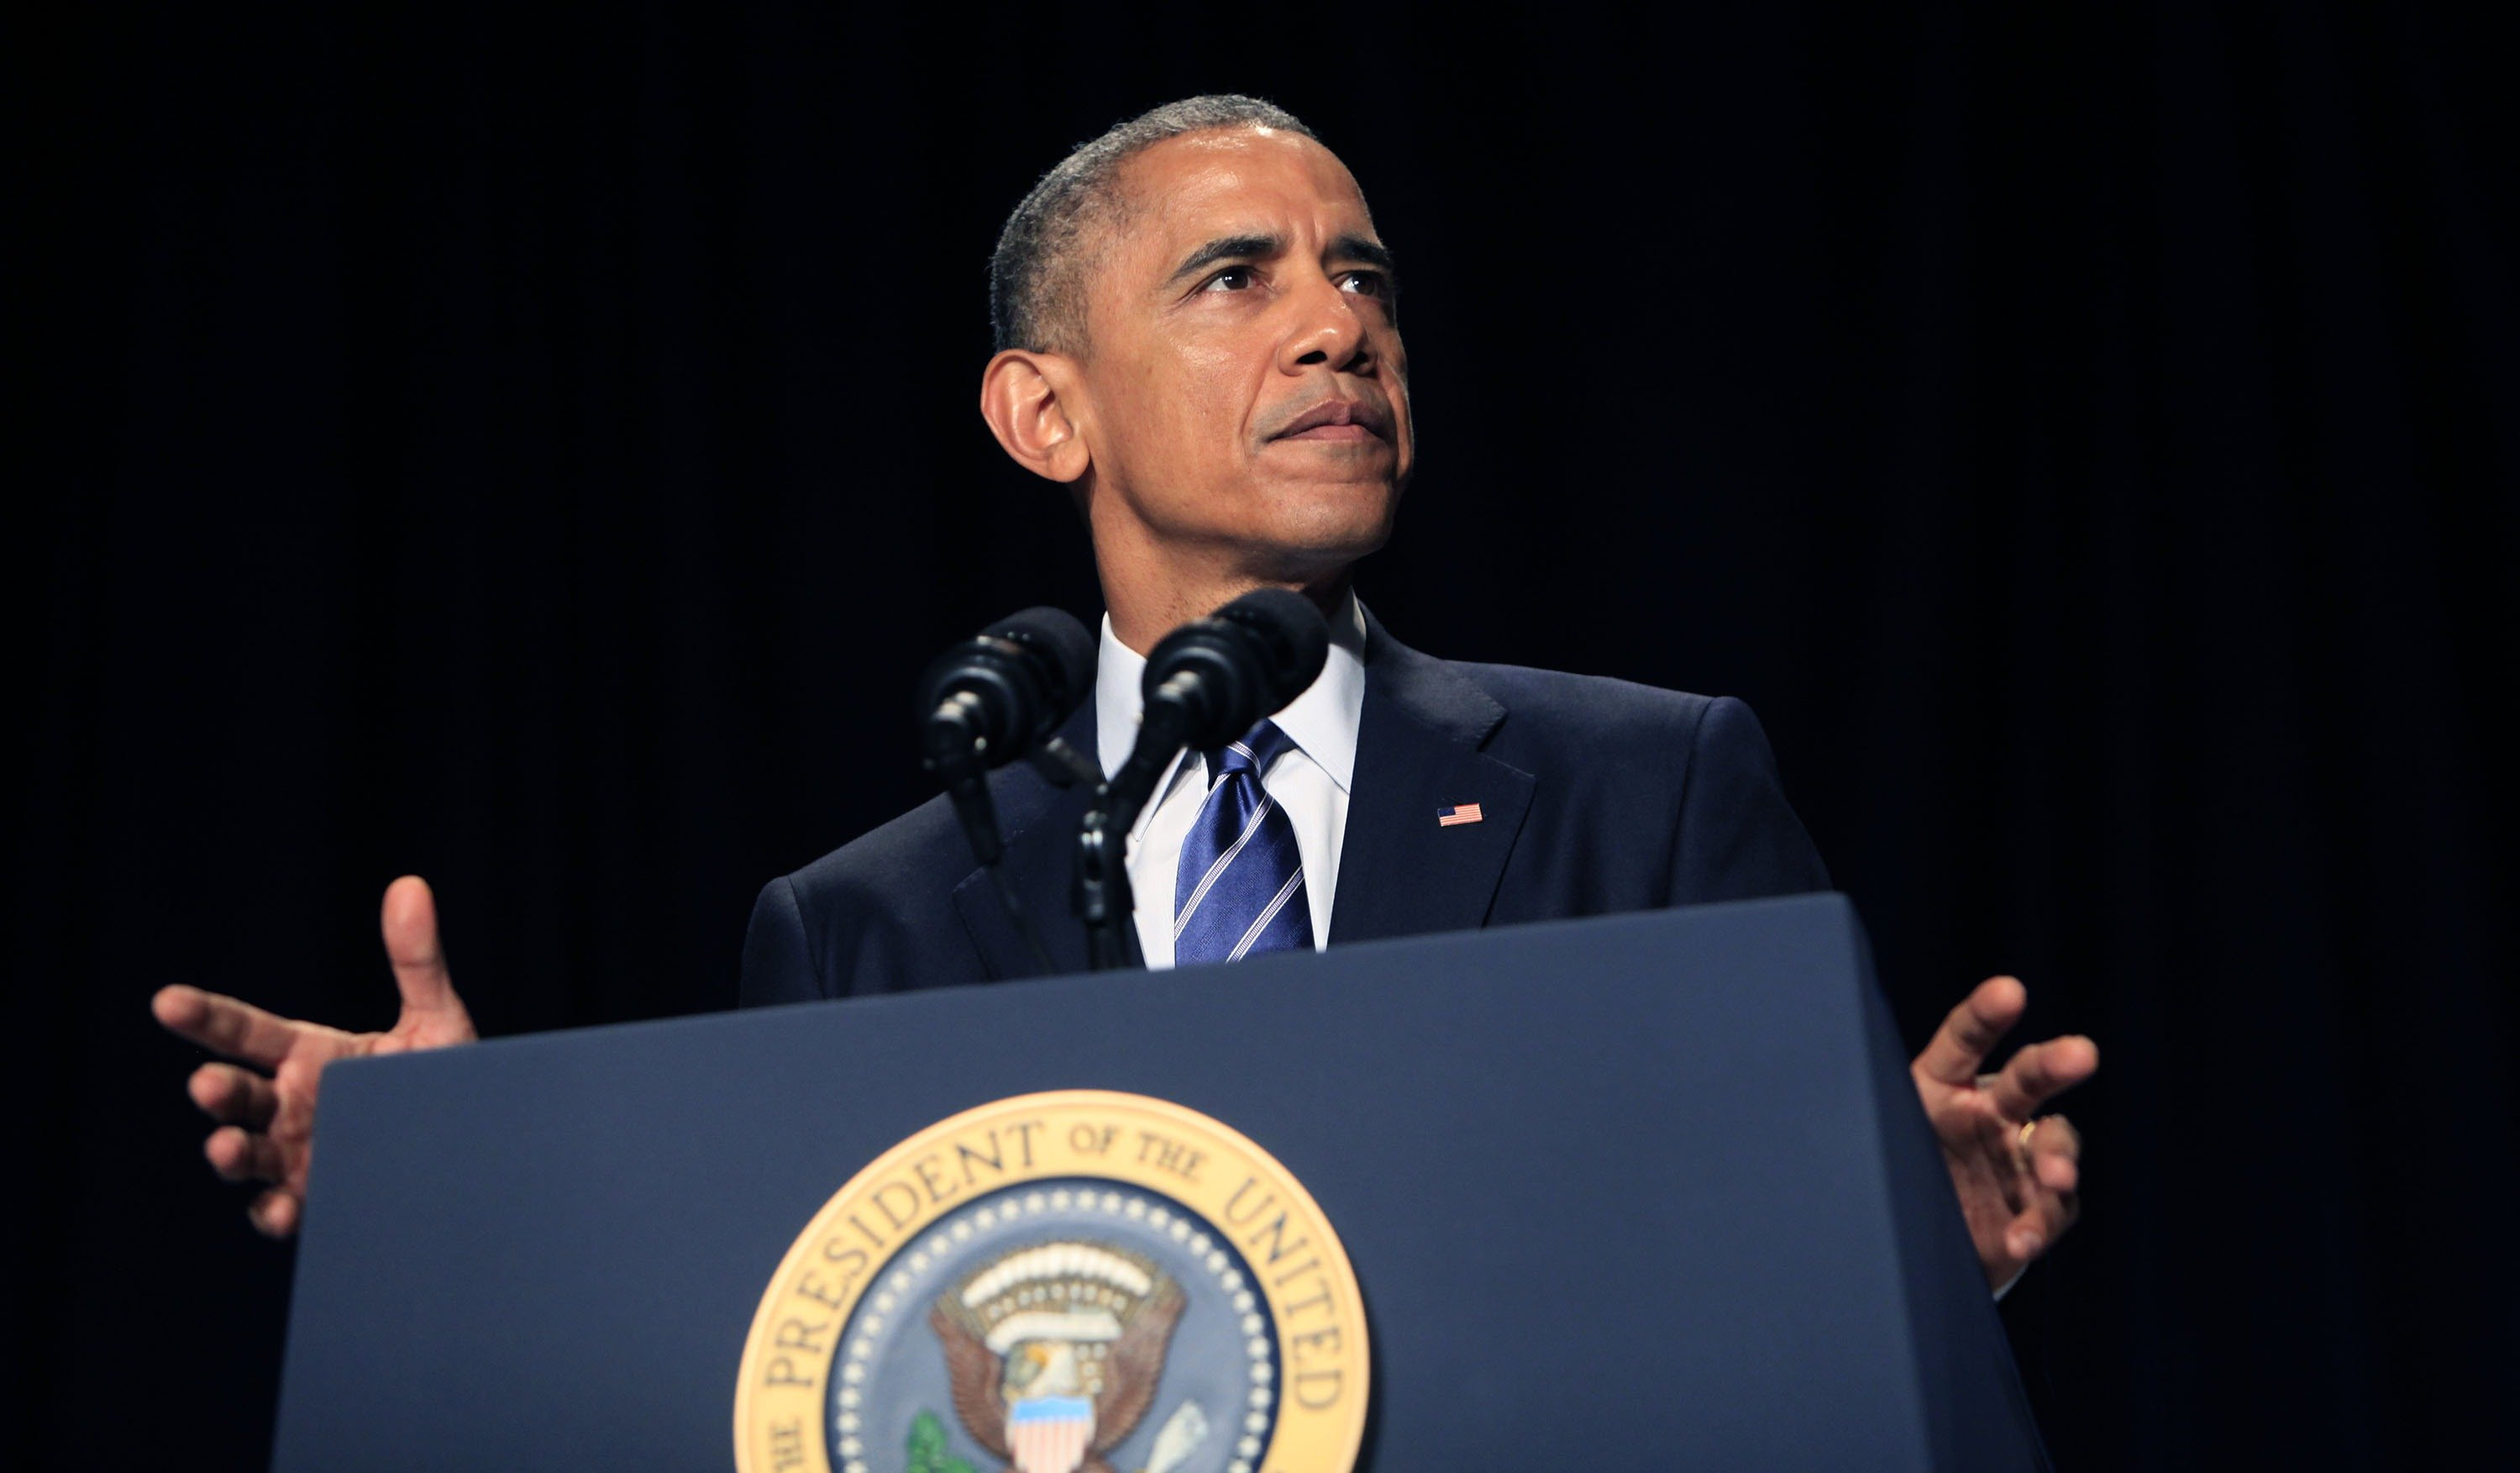 President Barack Obama speaks during the National Prayer Breakfast on Feb. 5, 2015 in Washington D.C.